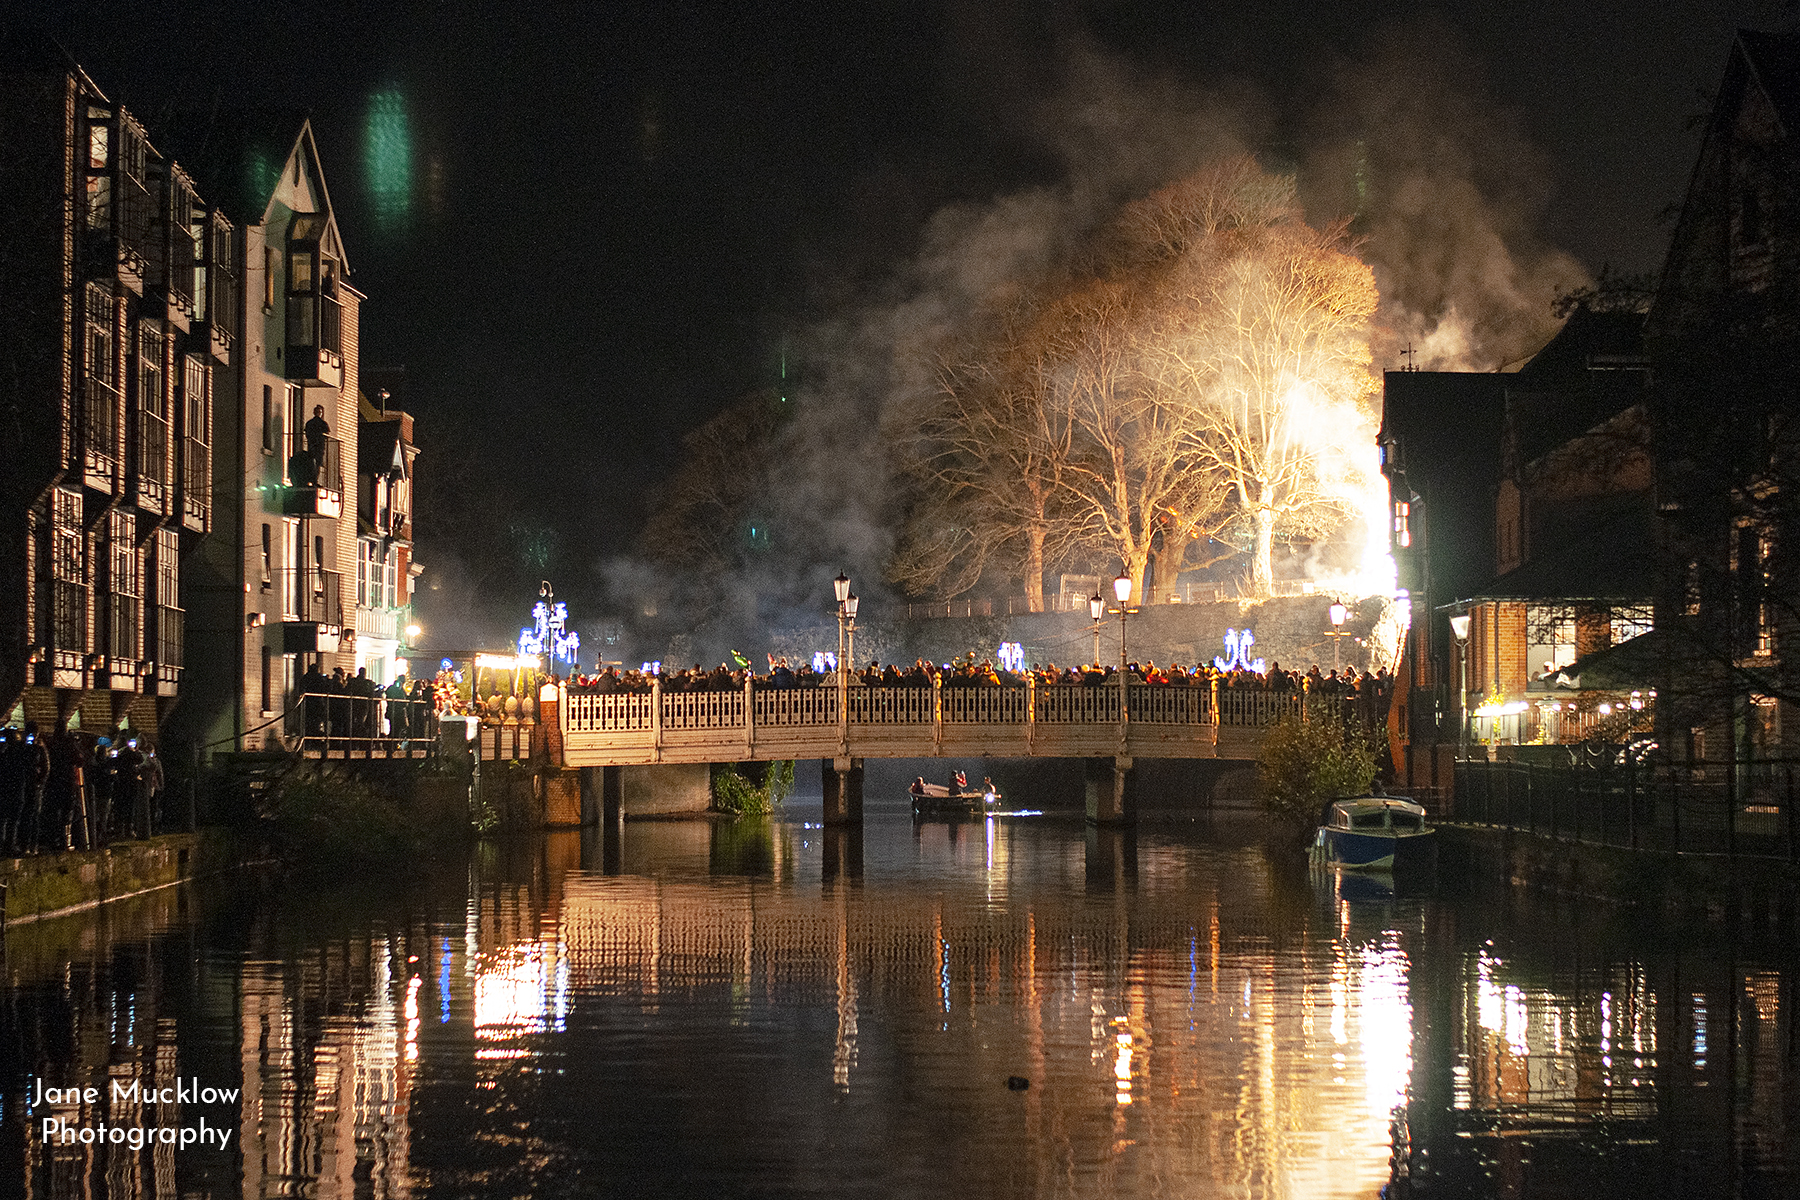 Photo of Tonbridge Big Bridge at the Christmas fireworks, by Jane Mucklow